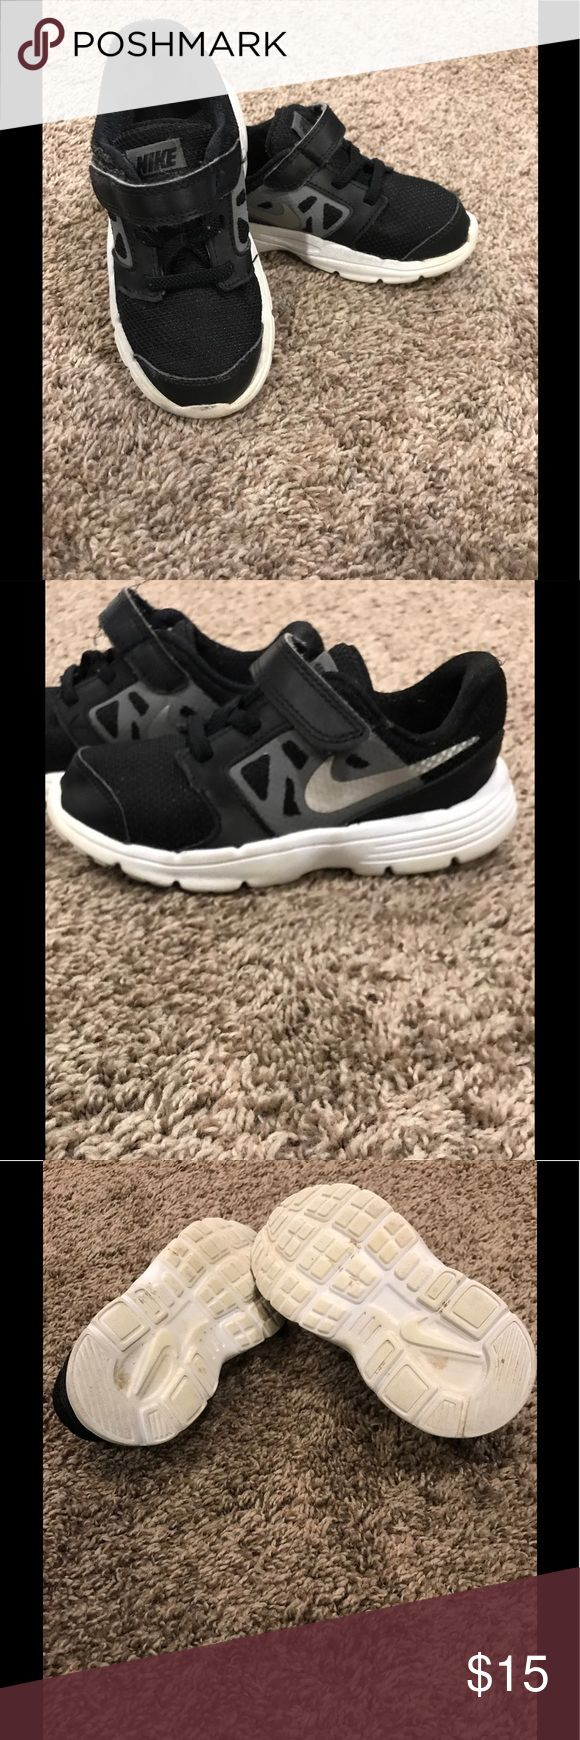 Toddler boys Nike shoes Nike shoes size 10c boys black and white used but good condition Nike Shoes Sneakers